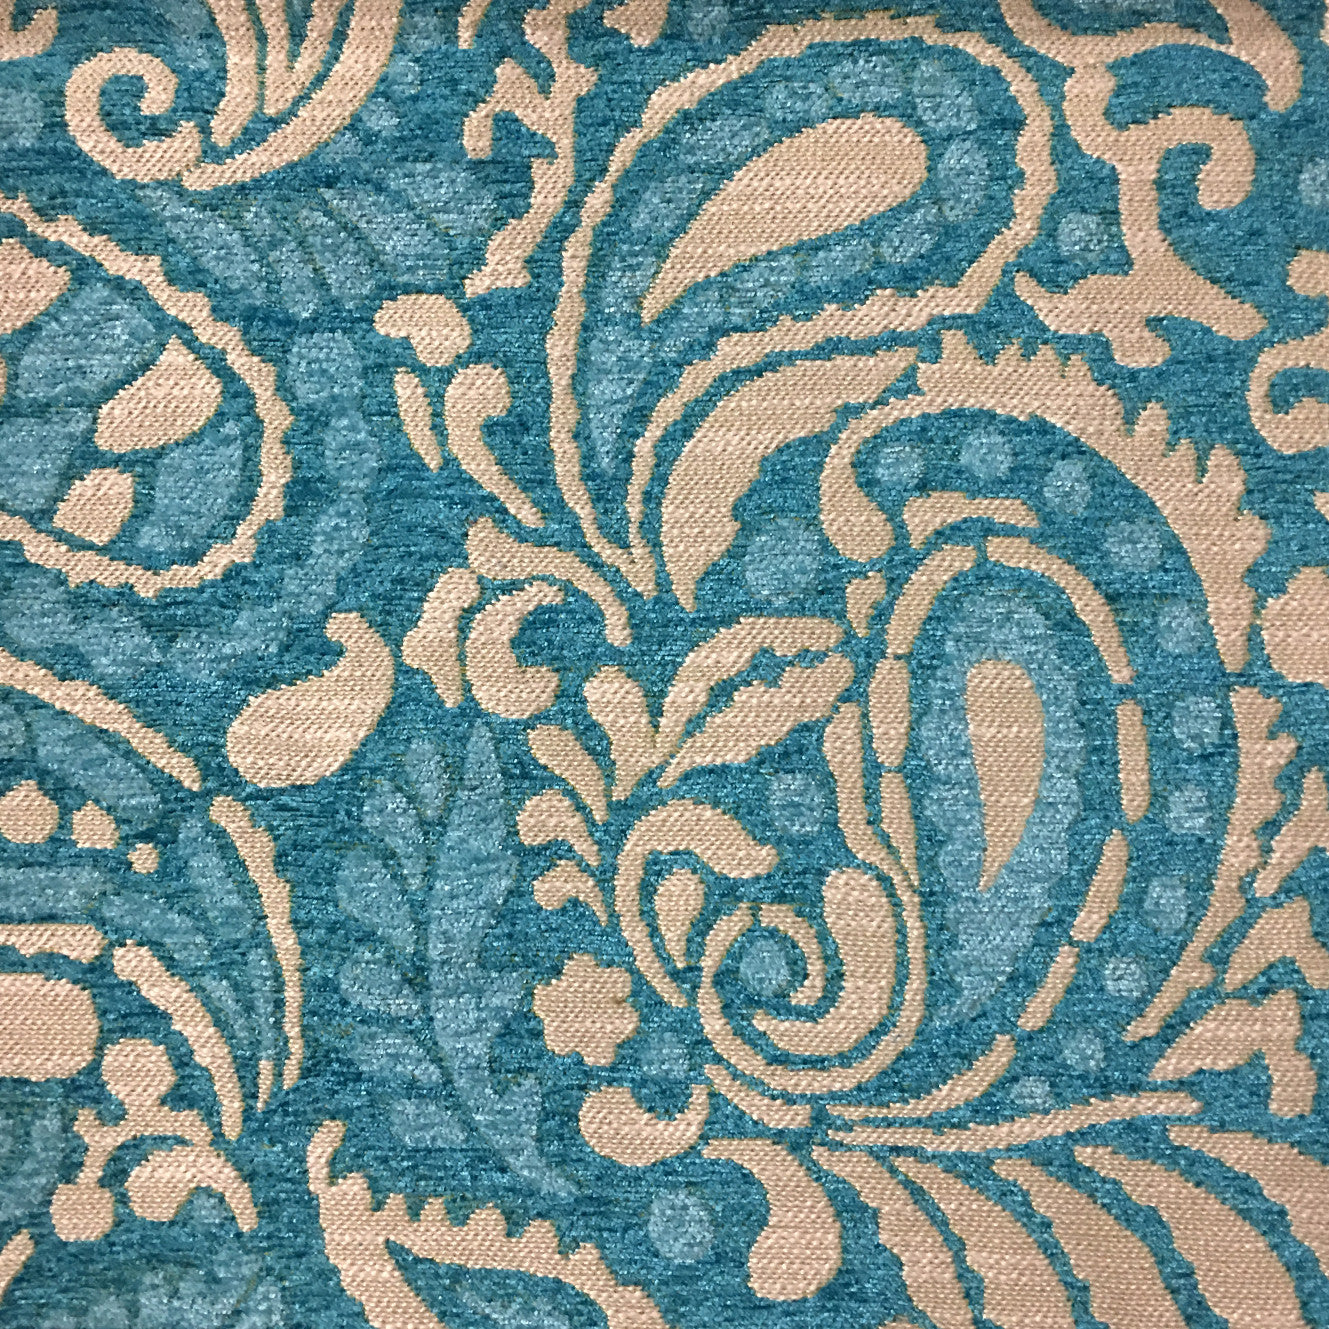 Top Fabric Blog: Apartment Therapy's Guide to Upholstery Fabric